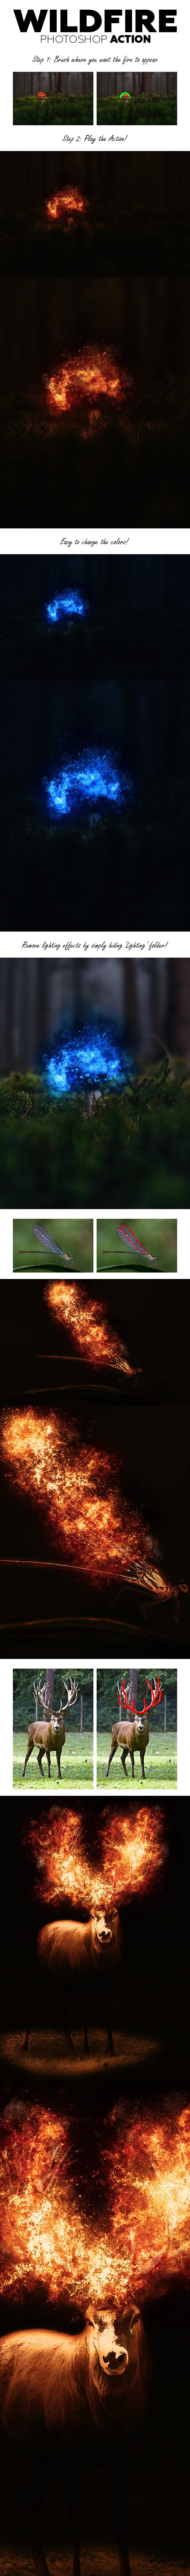 WildFire Photoshop Action - Photo Effects Actions